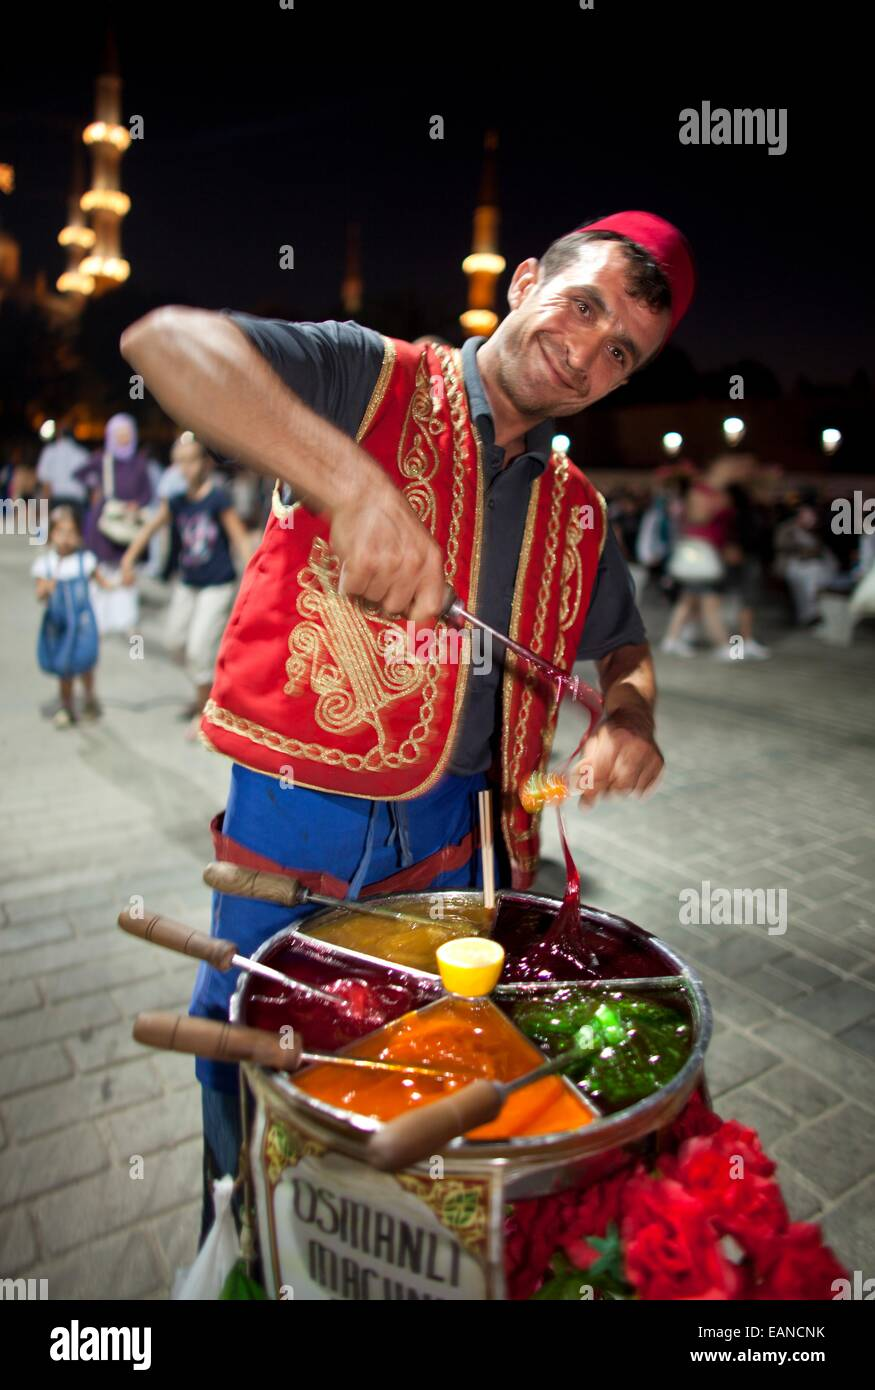 street vendor selling sweets, istanbul - Stock Image